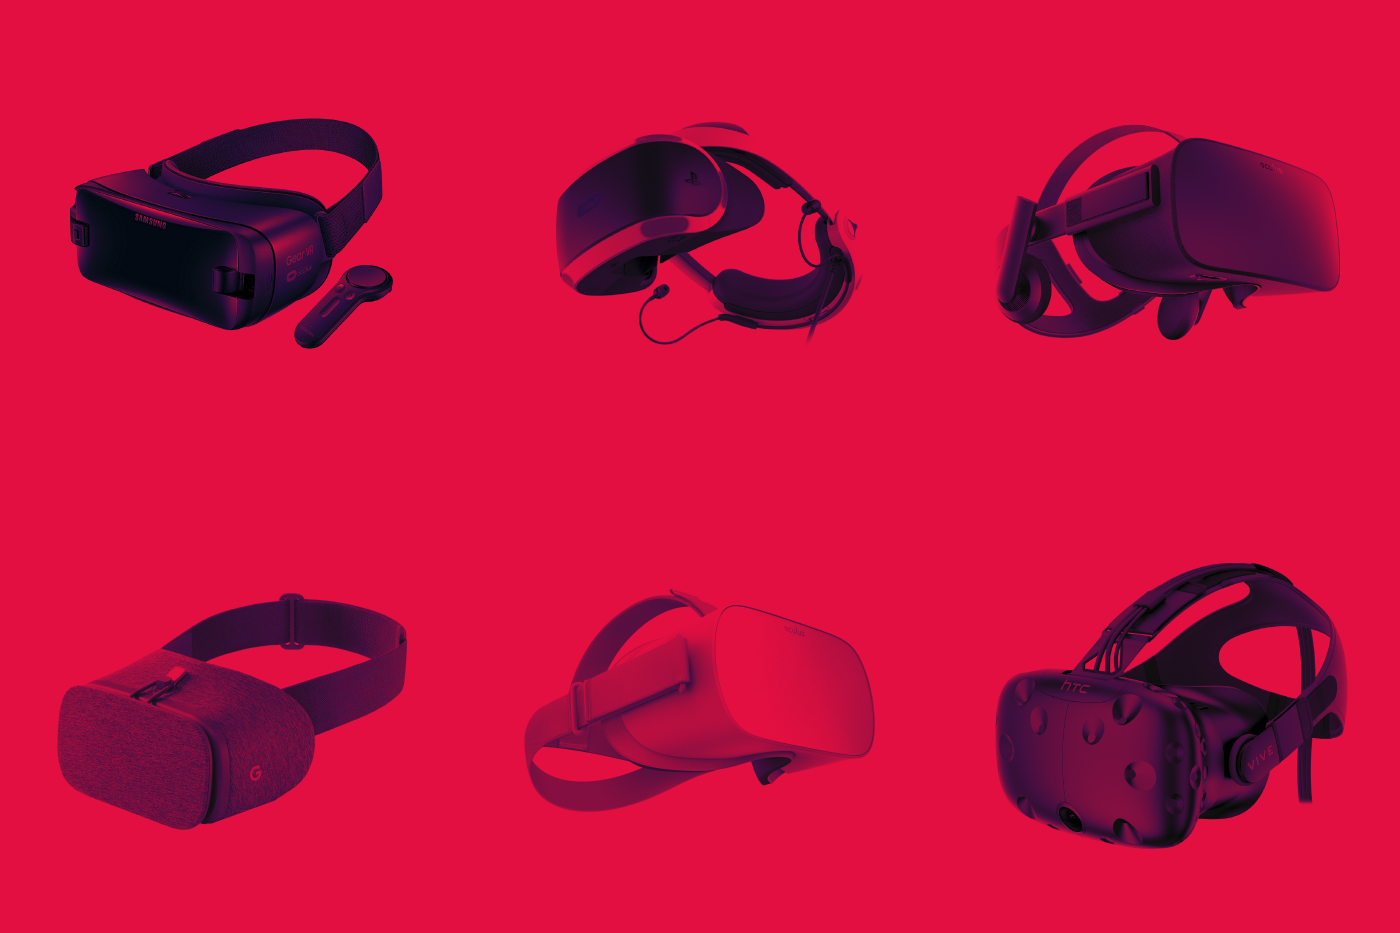 Best VR Headset - A few of the best VR headsets shown on a red background.